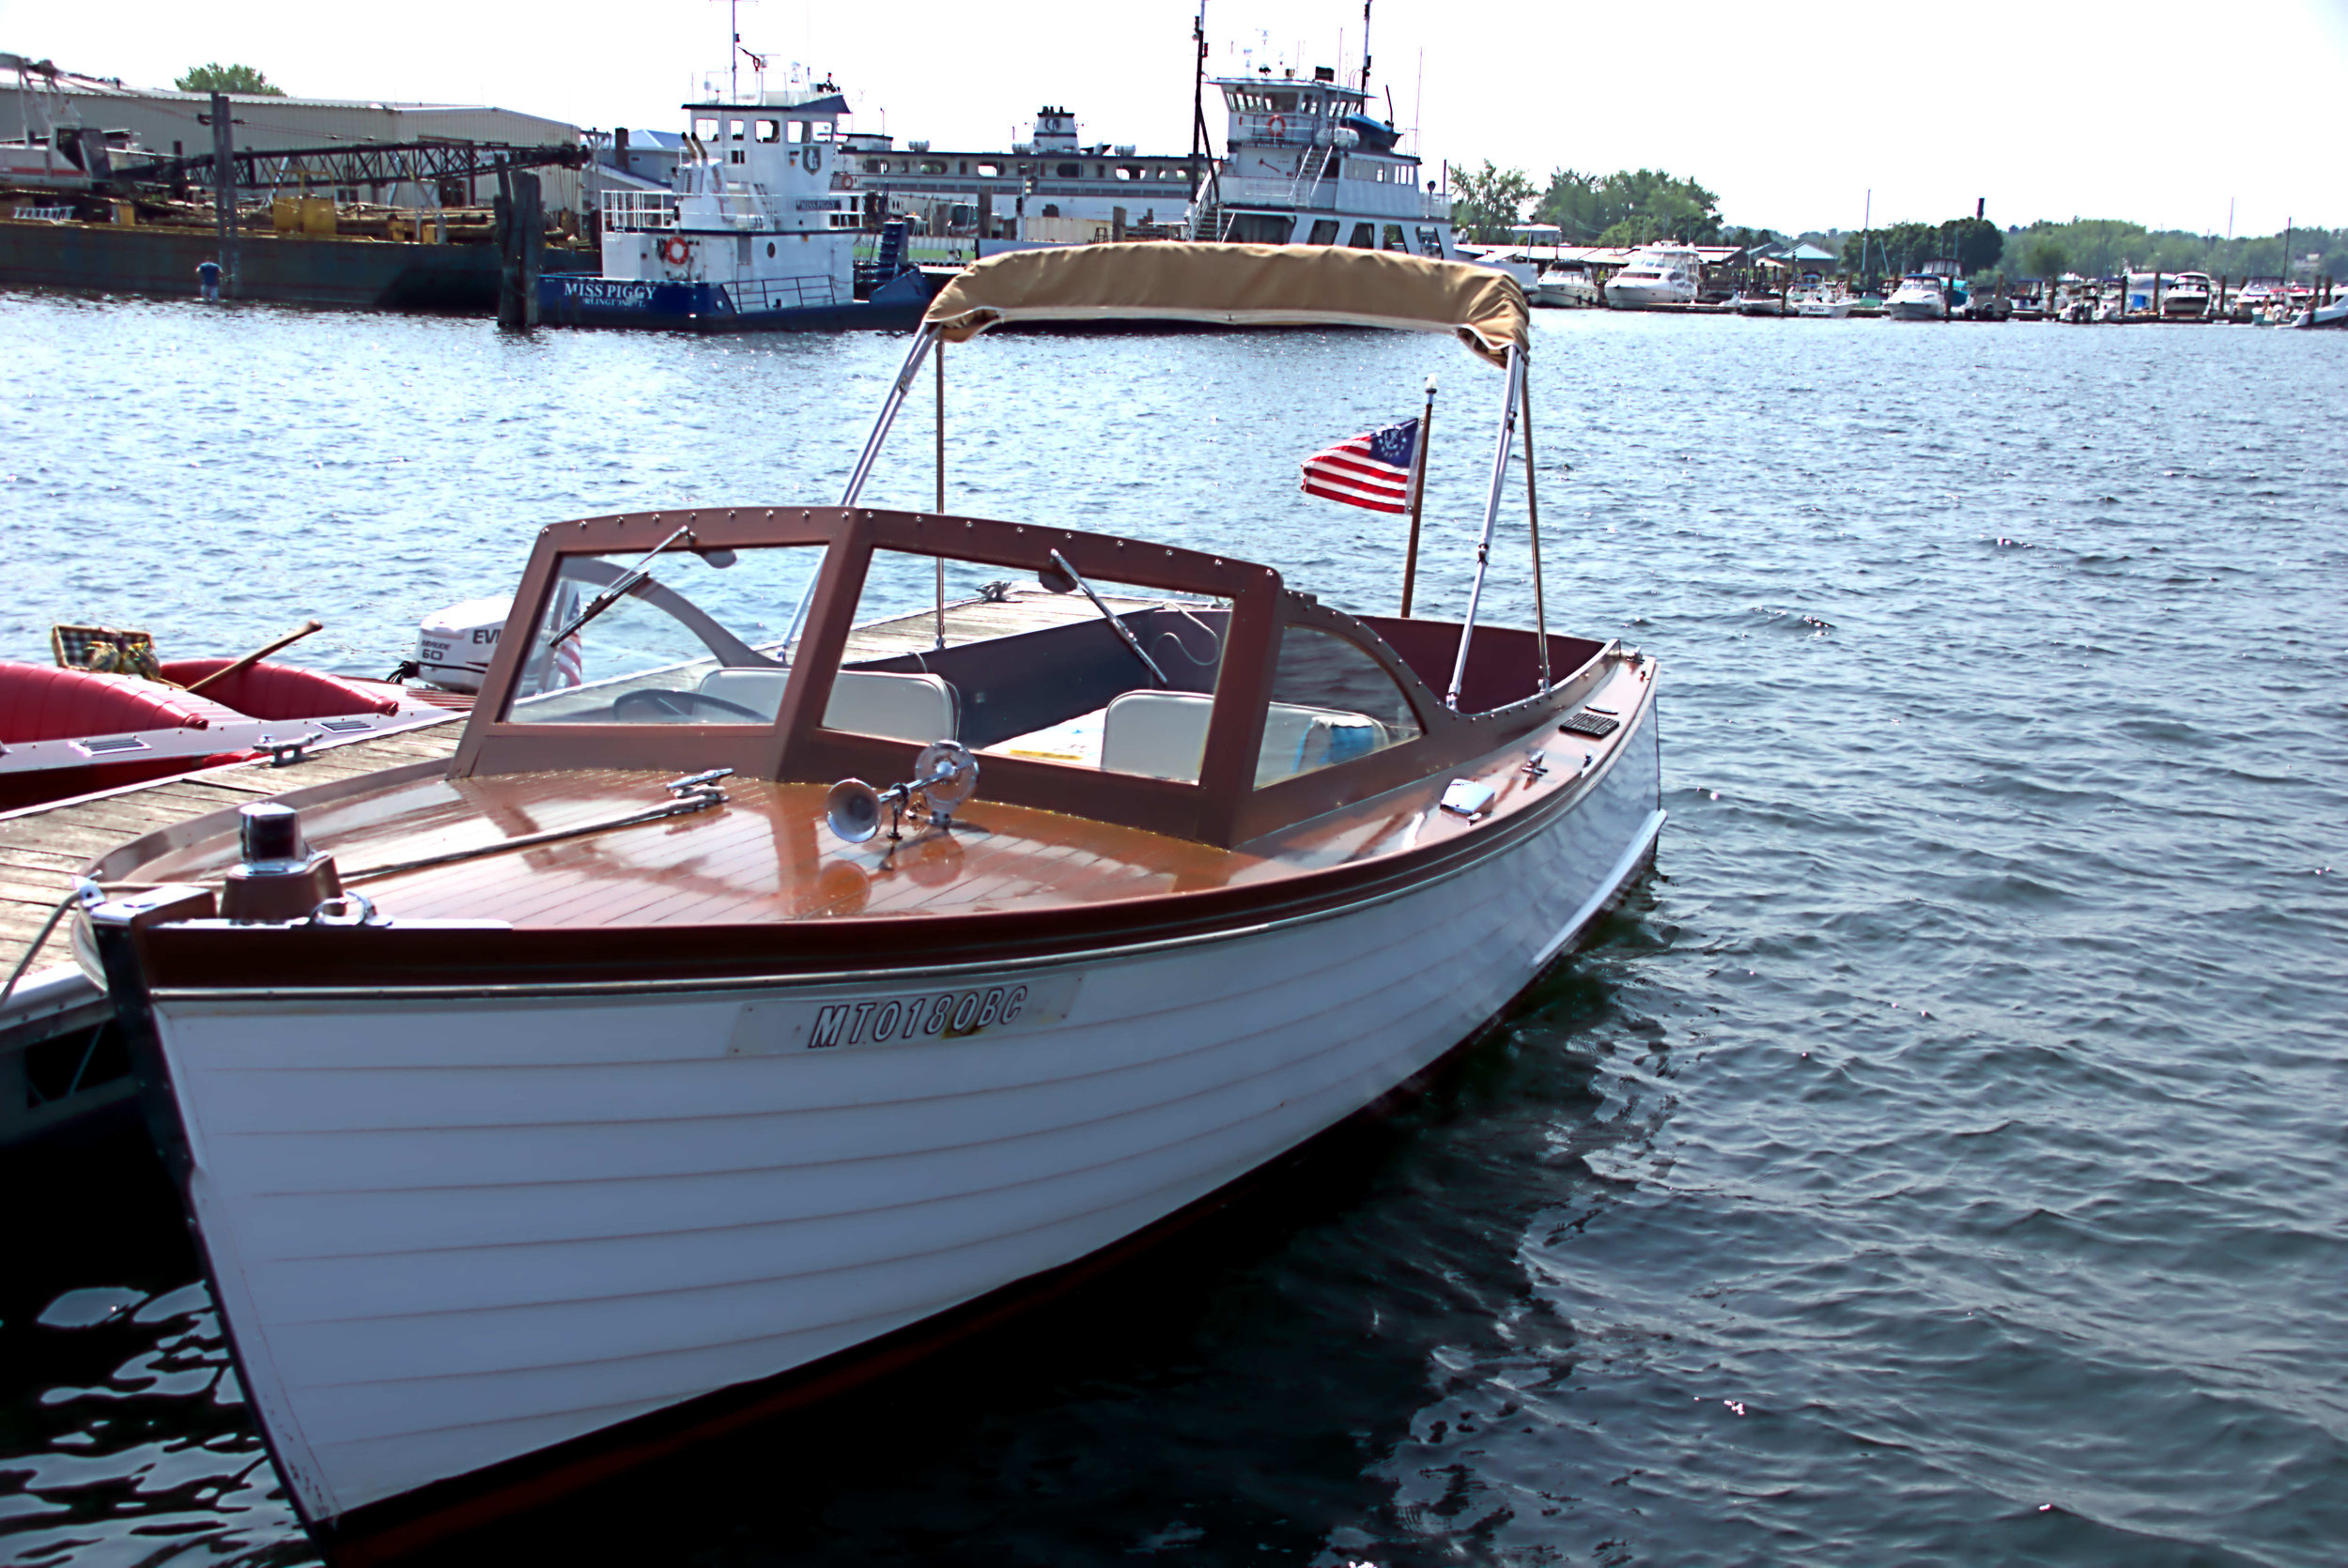 Most Original - Tydamar II, 1957 24' Hubert Johnson, Classic Lapstrake Utility, owned by Matt Foley and Susie Becker